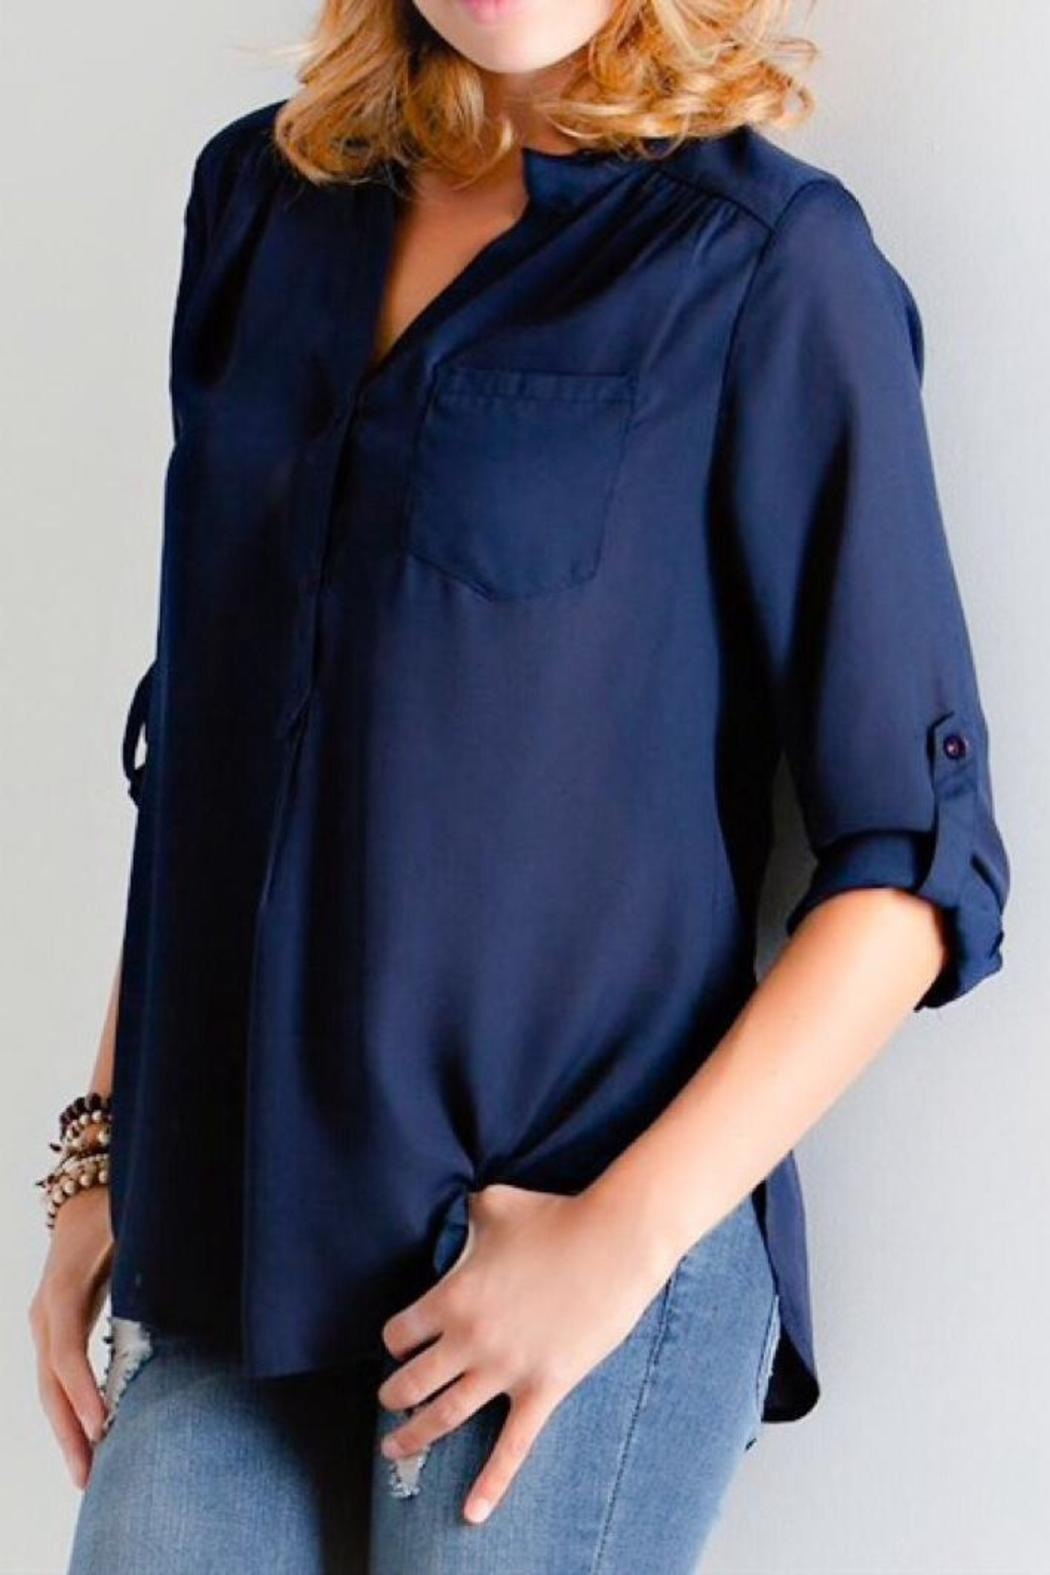 Navy Chiffon Blouse from Washington by LuLu's Boutique — Shoptiques